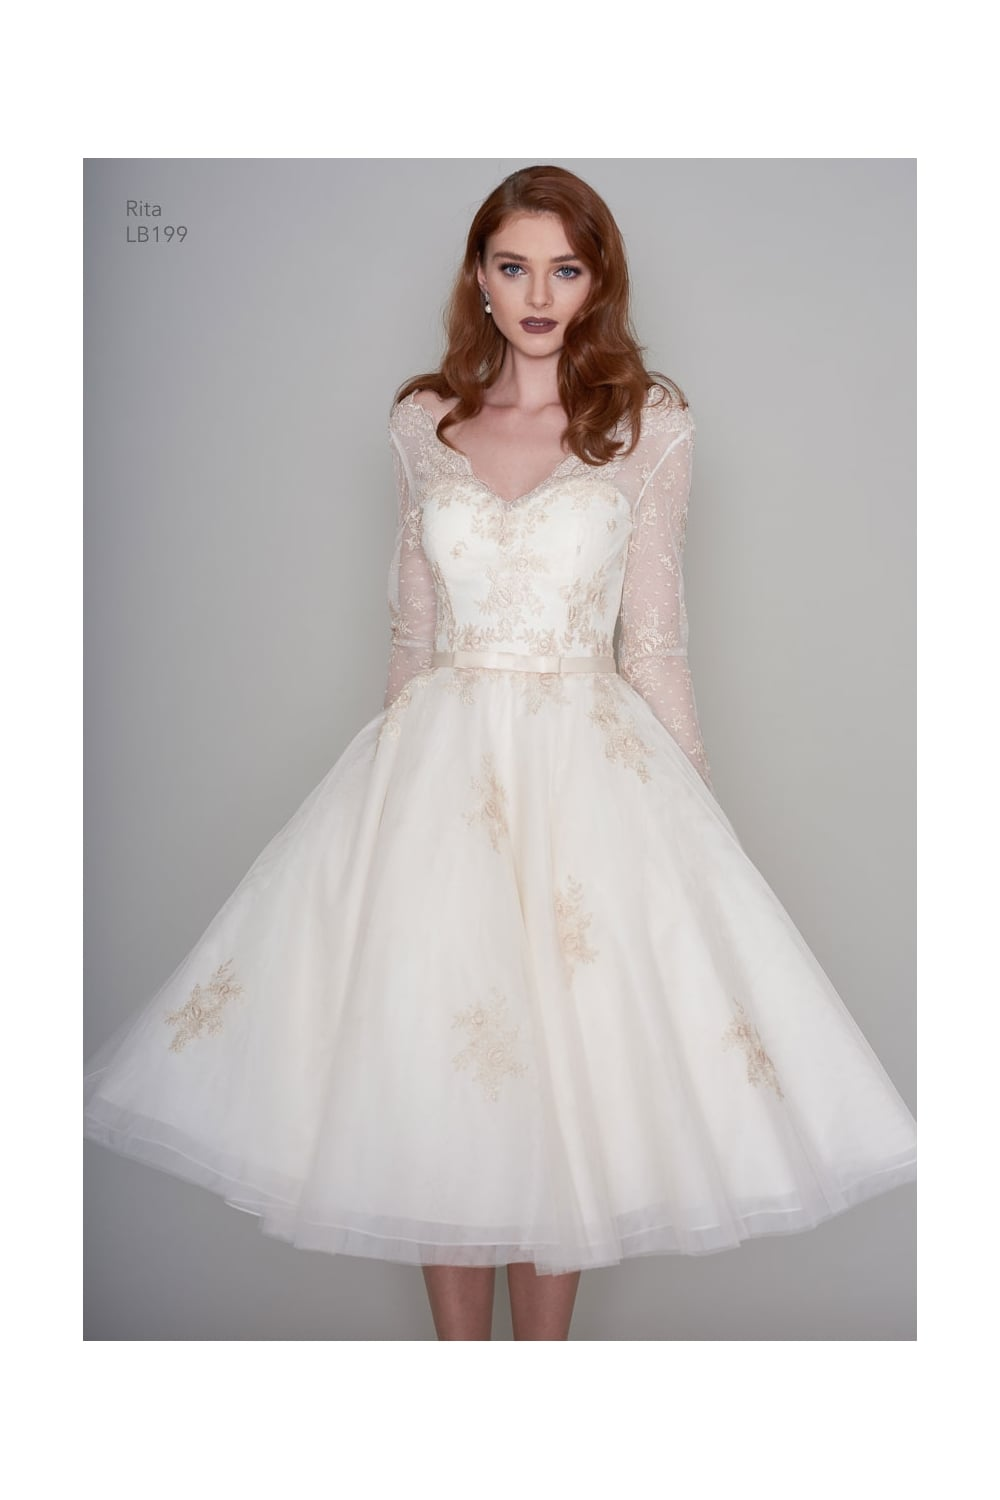 Loulou Rita Tea Length Vintage Inspired Short Gold Wedding Dress With Sleeves